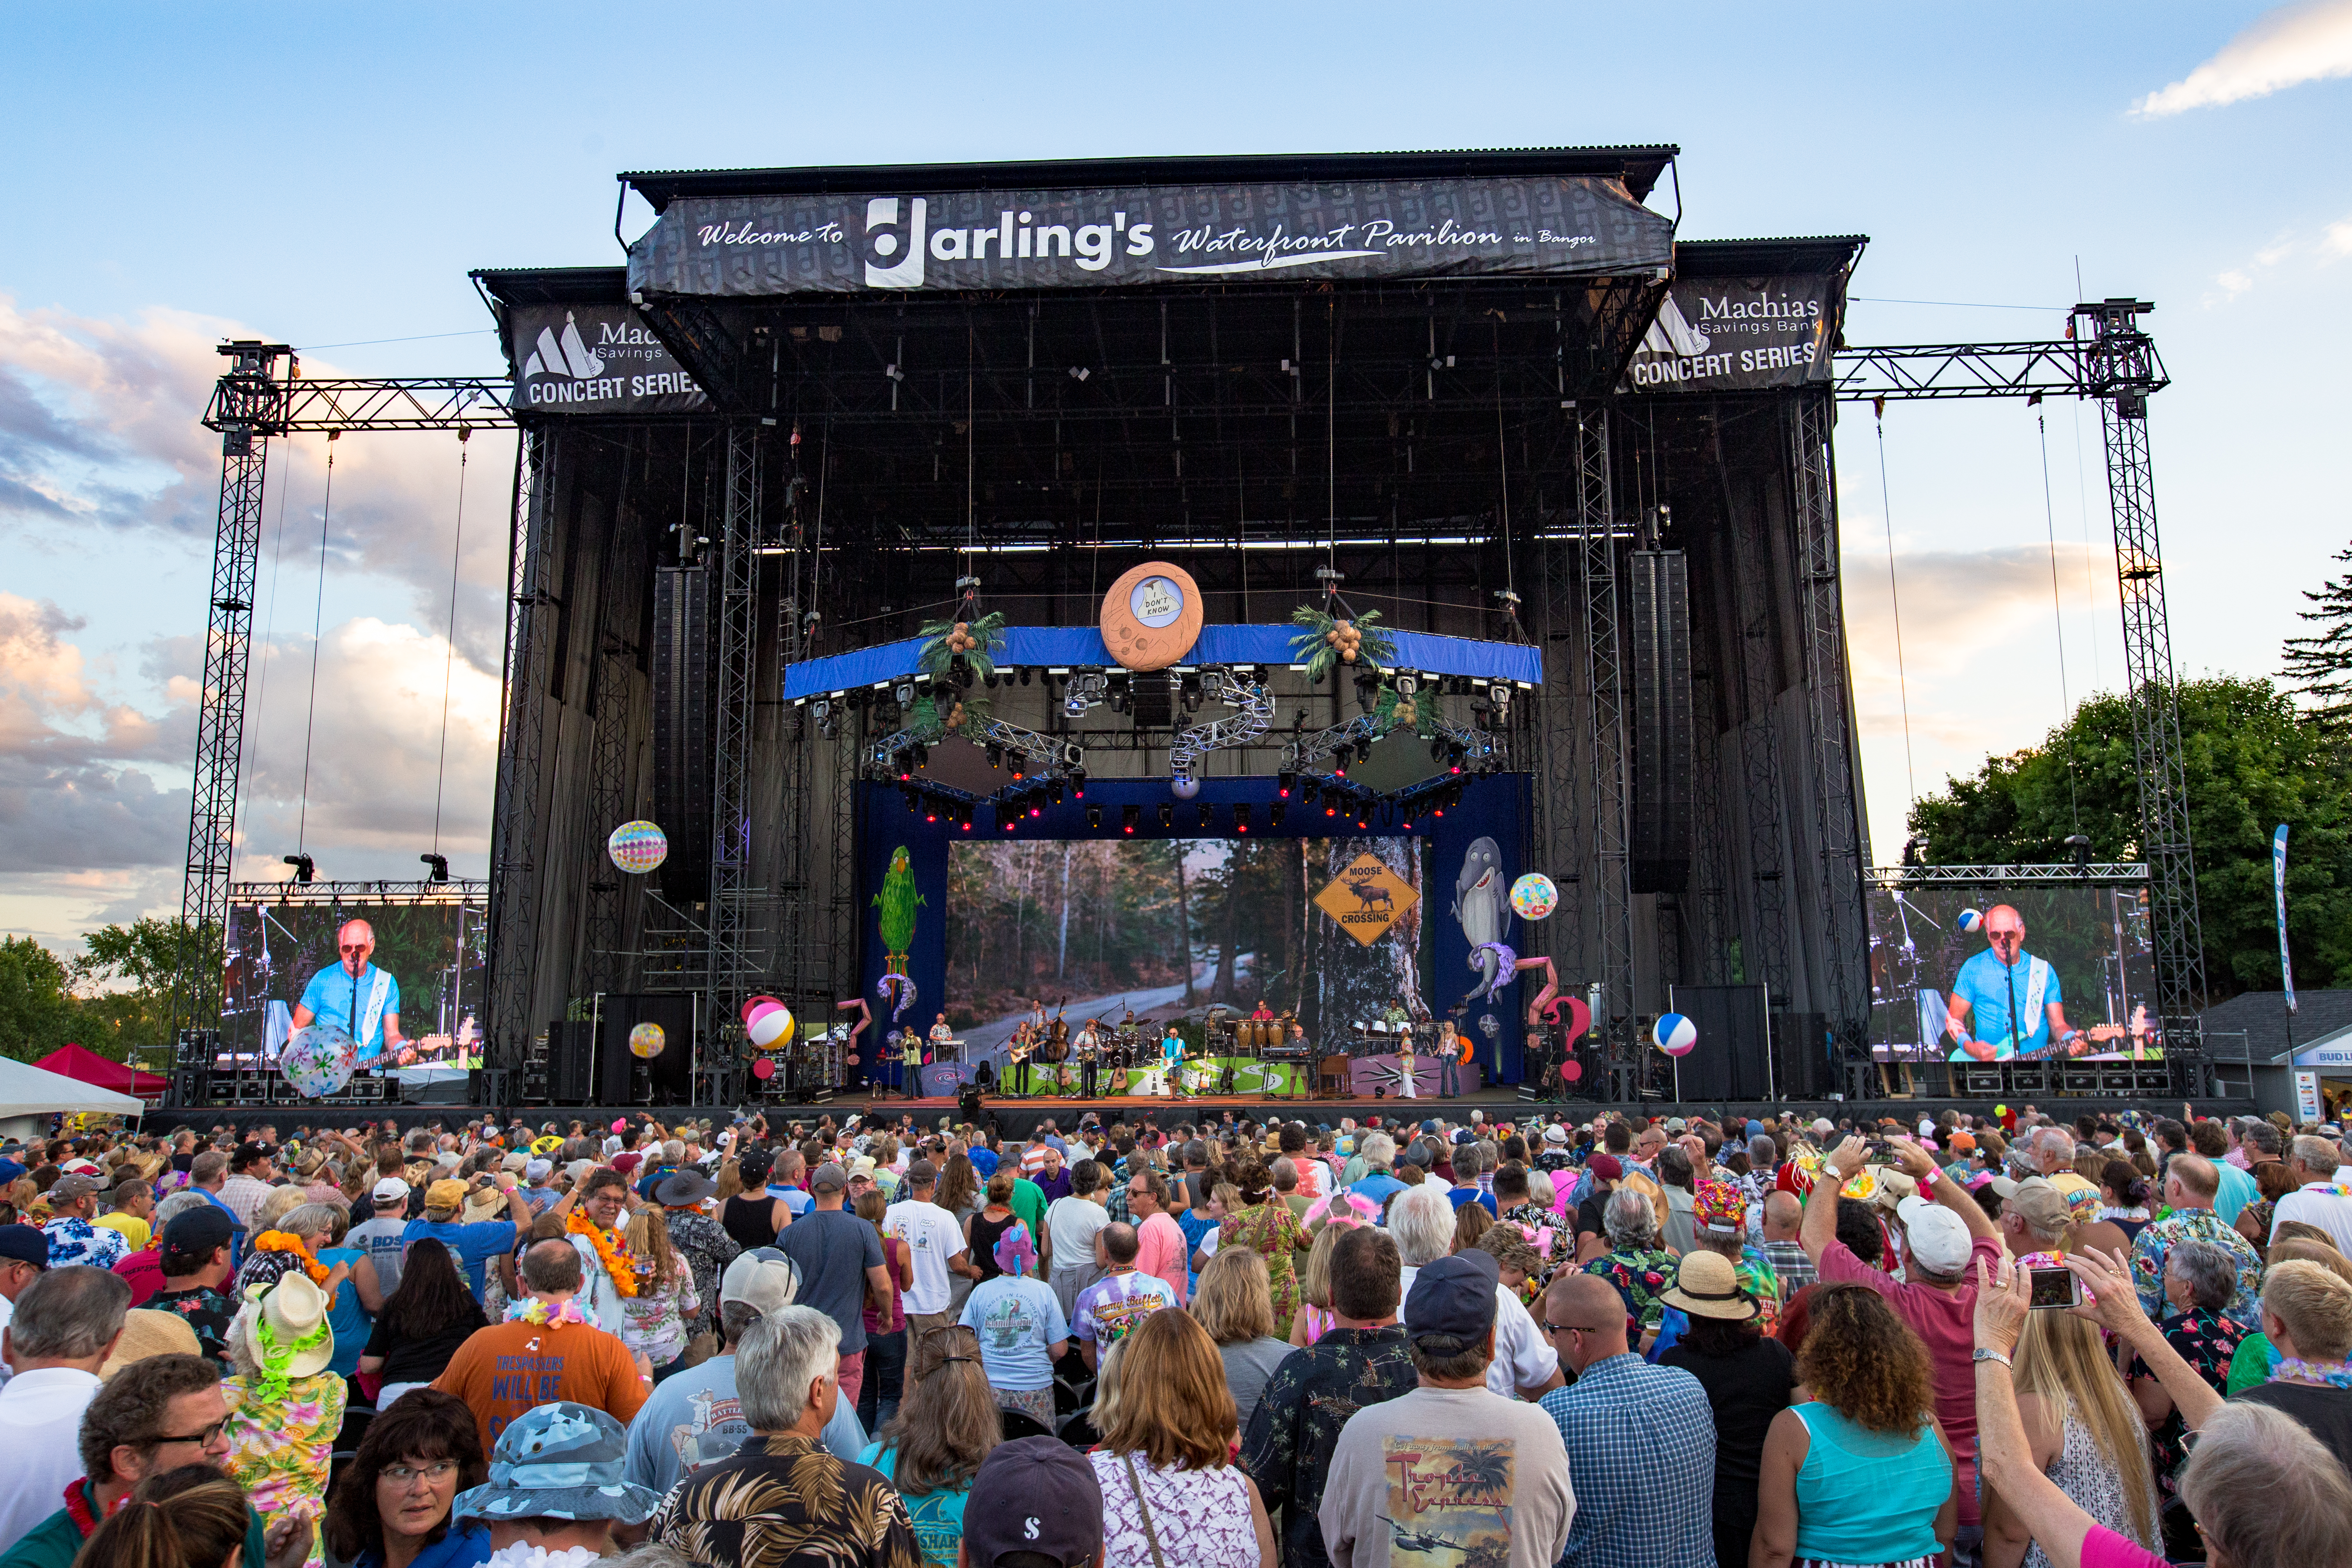 Waterfront concerts promoter wants longer contract to build waterfront concerts promoter wants longer contract to build permanent venue bangor bangor daily news bdn maine malvernweather Image collections